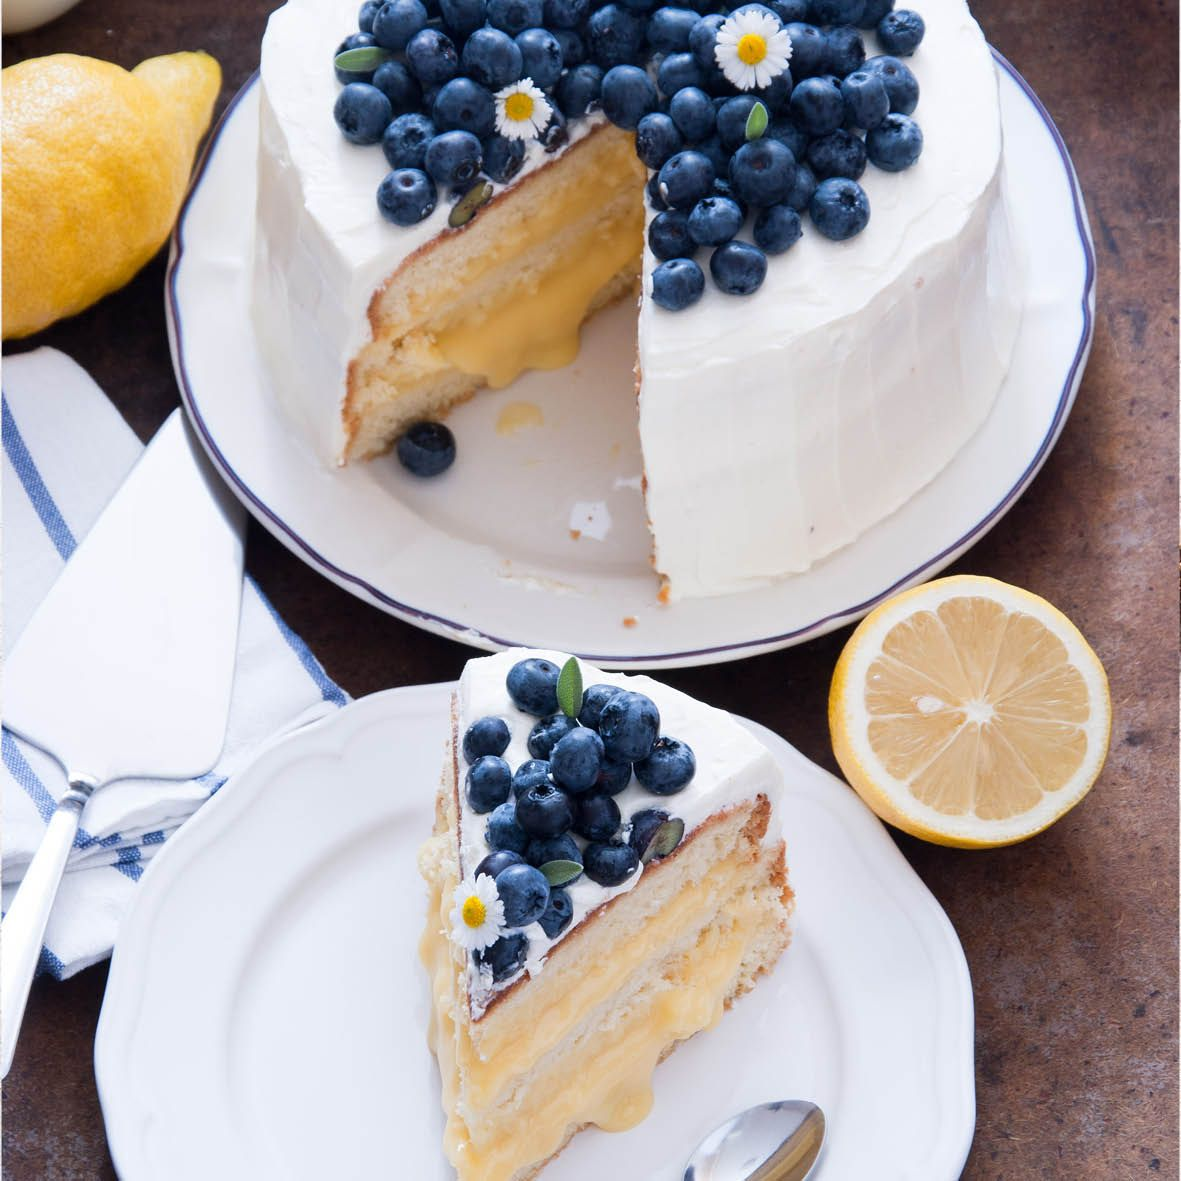 Blueberry_and_Lemon_Delight_Cake.jpg